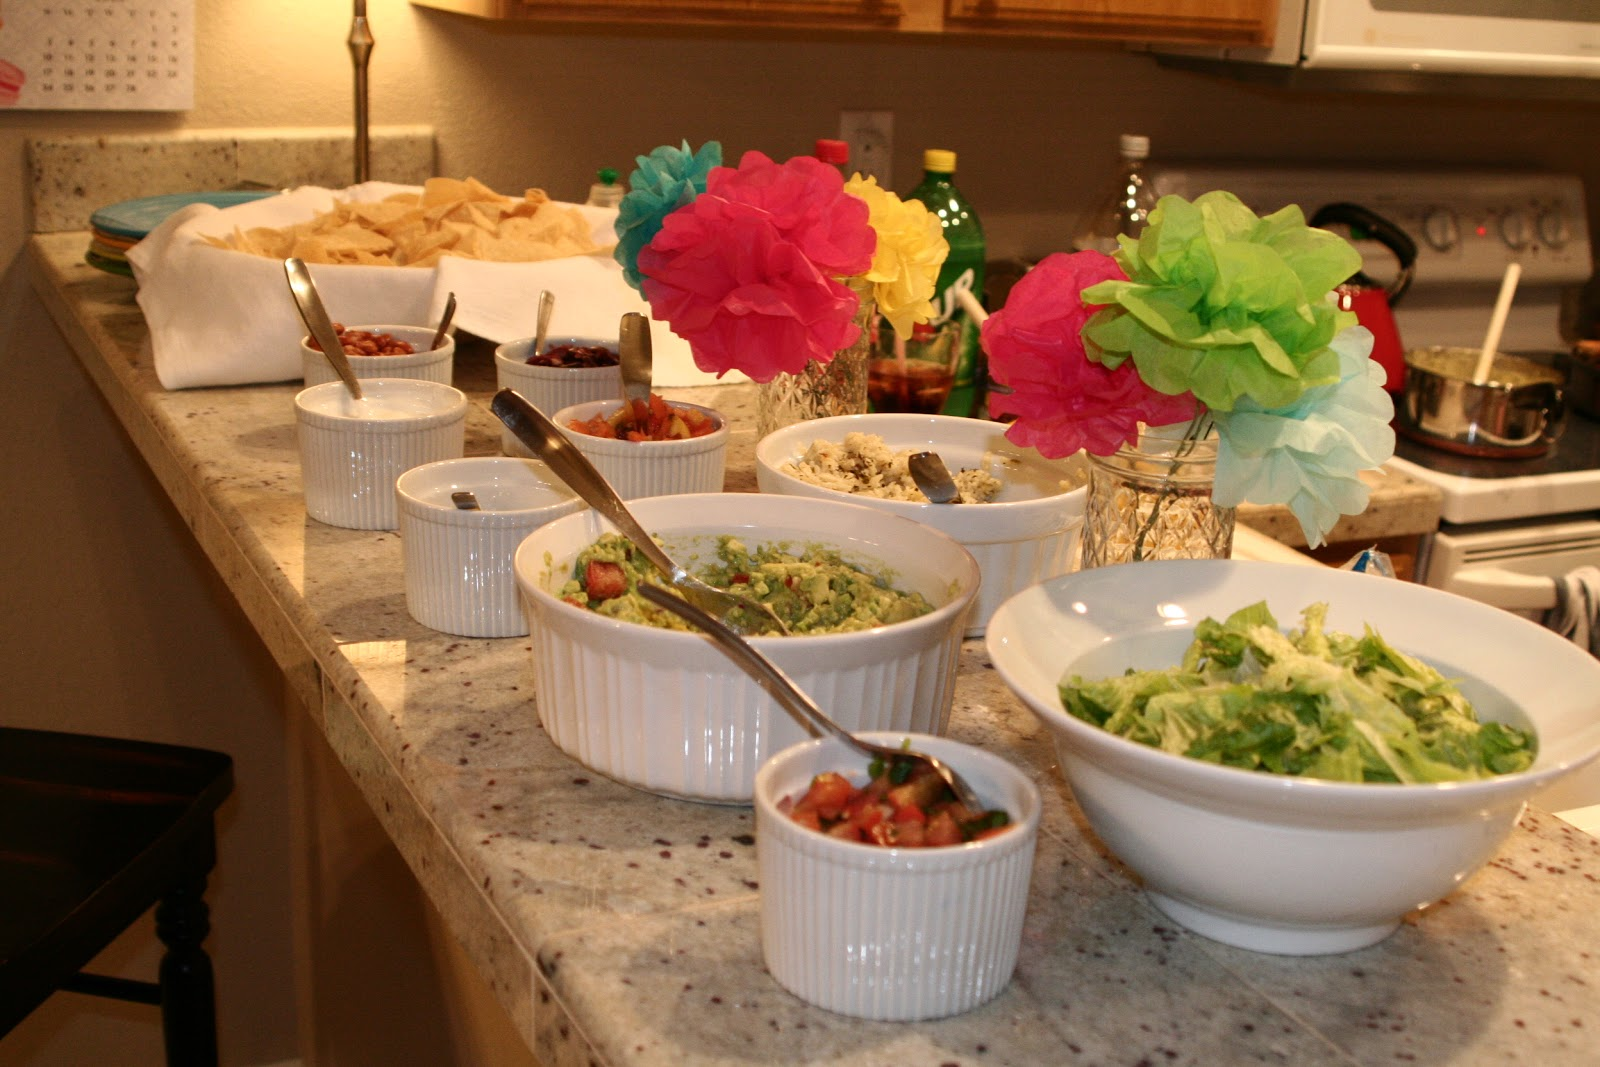 We had a little nacho bar with all the fixings.